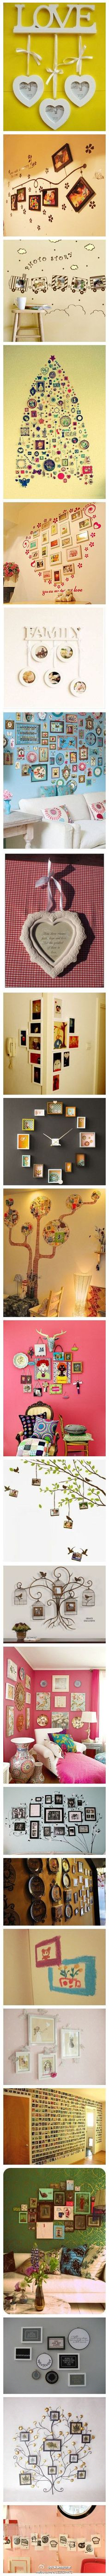 Ideas for decorating the home. Picture placements etc. So very cute! I love it.